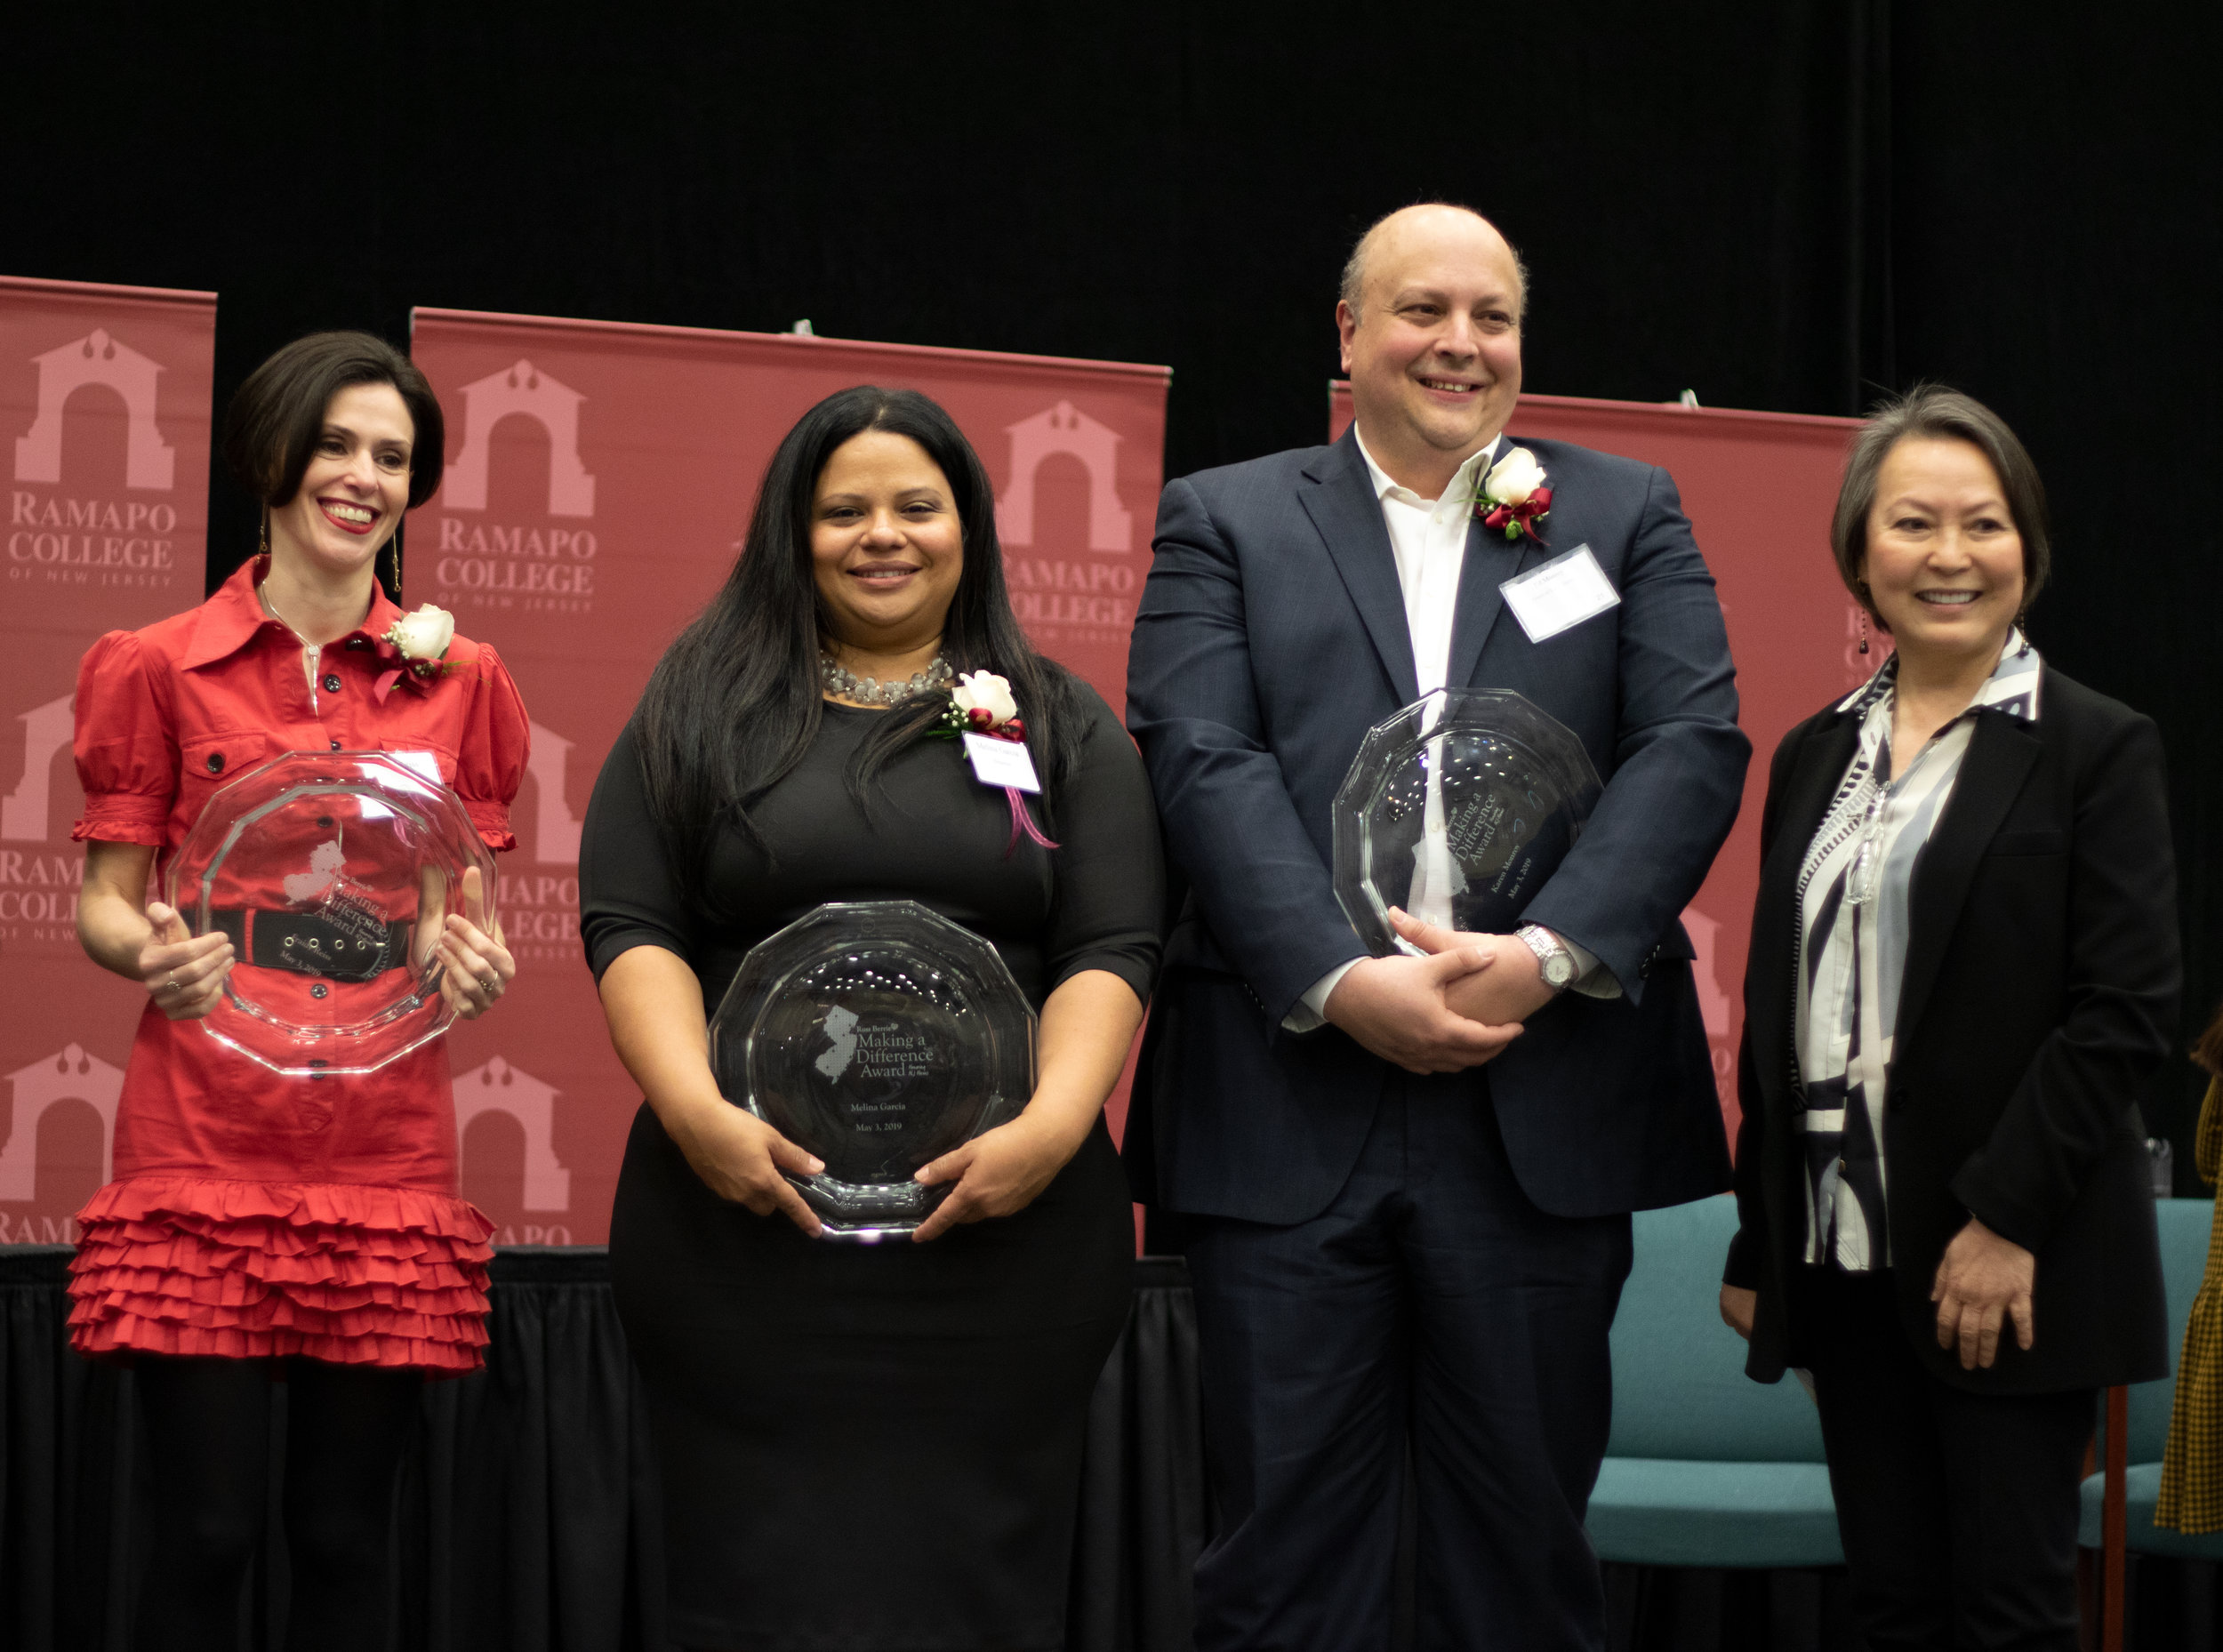 Fraidy Reiss, Melina Garcia, Ed Monroy (who accepted the award on behalf of his wife, Karen) and Angelica Berrie, President of the Board of Trustees of The Russell Berrie Foundation.